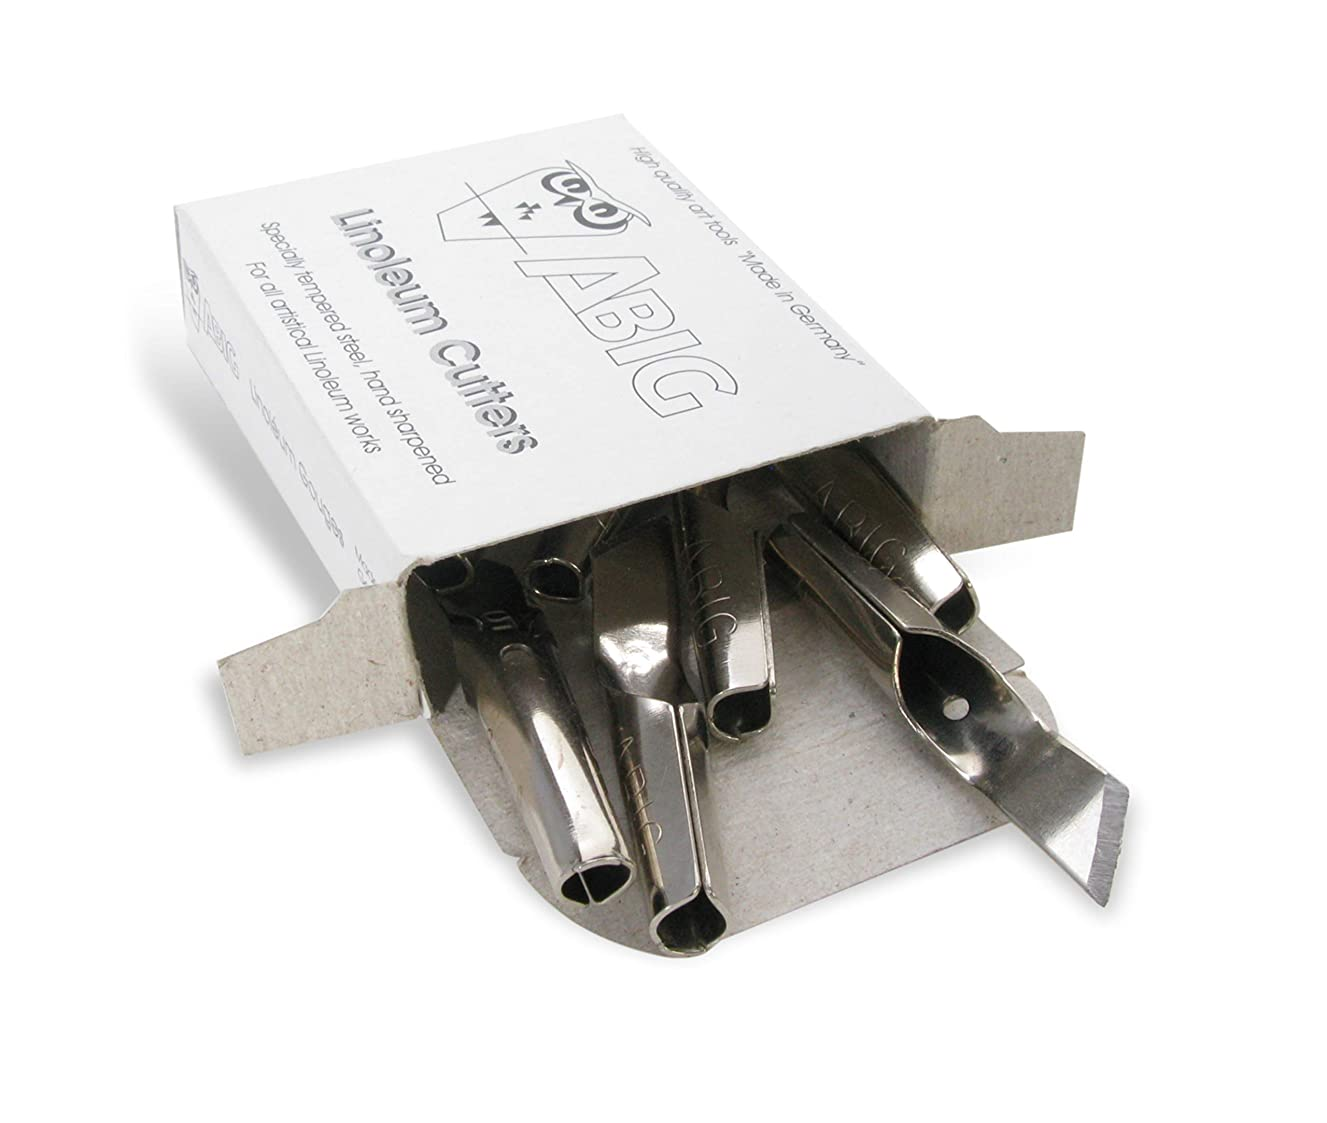 American Educational Products A-120305 ABIG Blade for Clean Edge Cutting, 6 mm, Hardened Steel